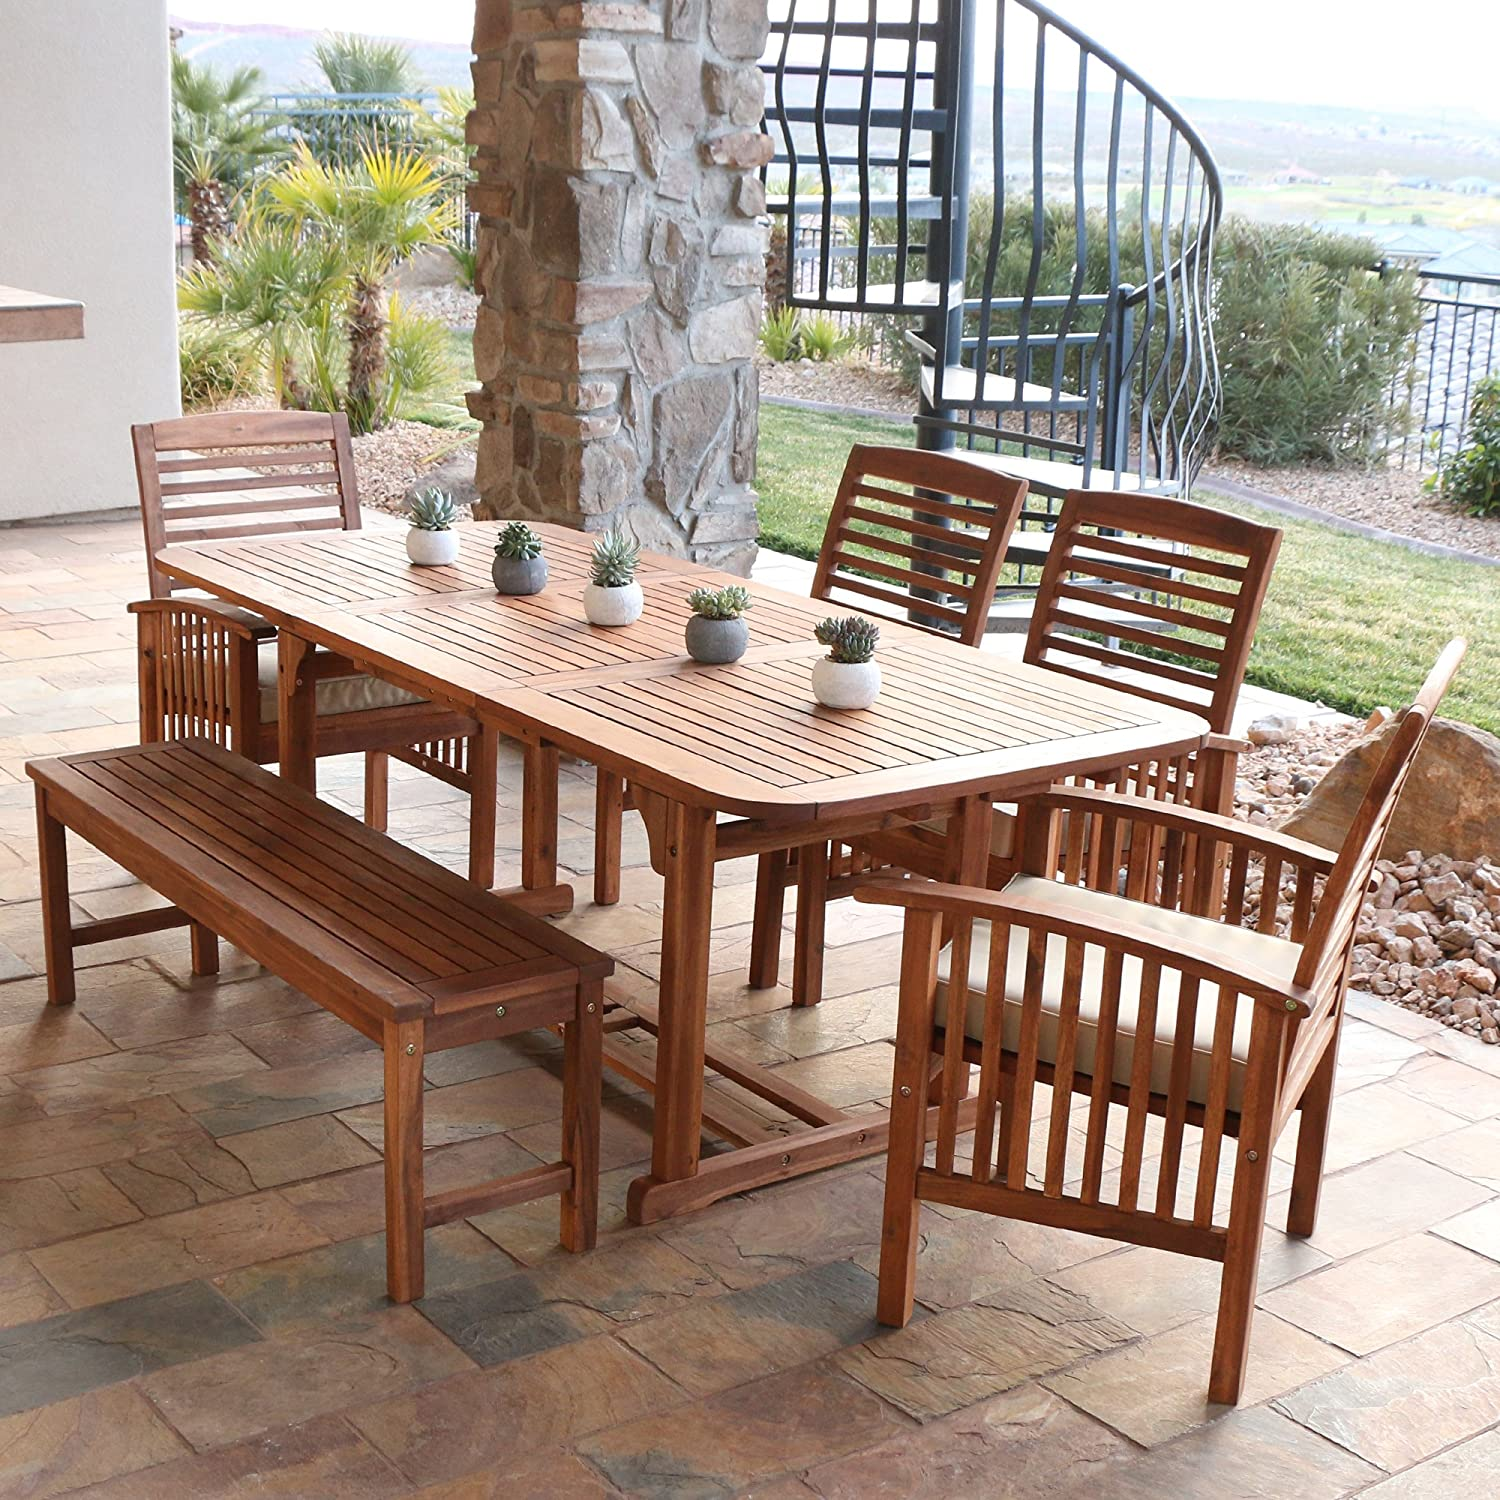 set table separately btl com stationary includes chairs swivel a patio dp piece amazon umbrella sold dining and durango rectangular